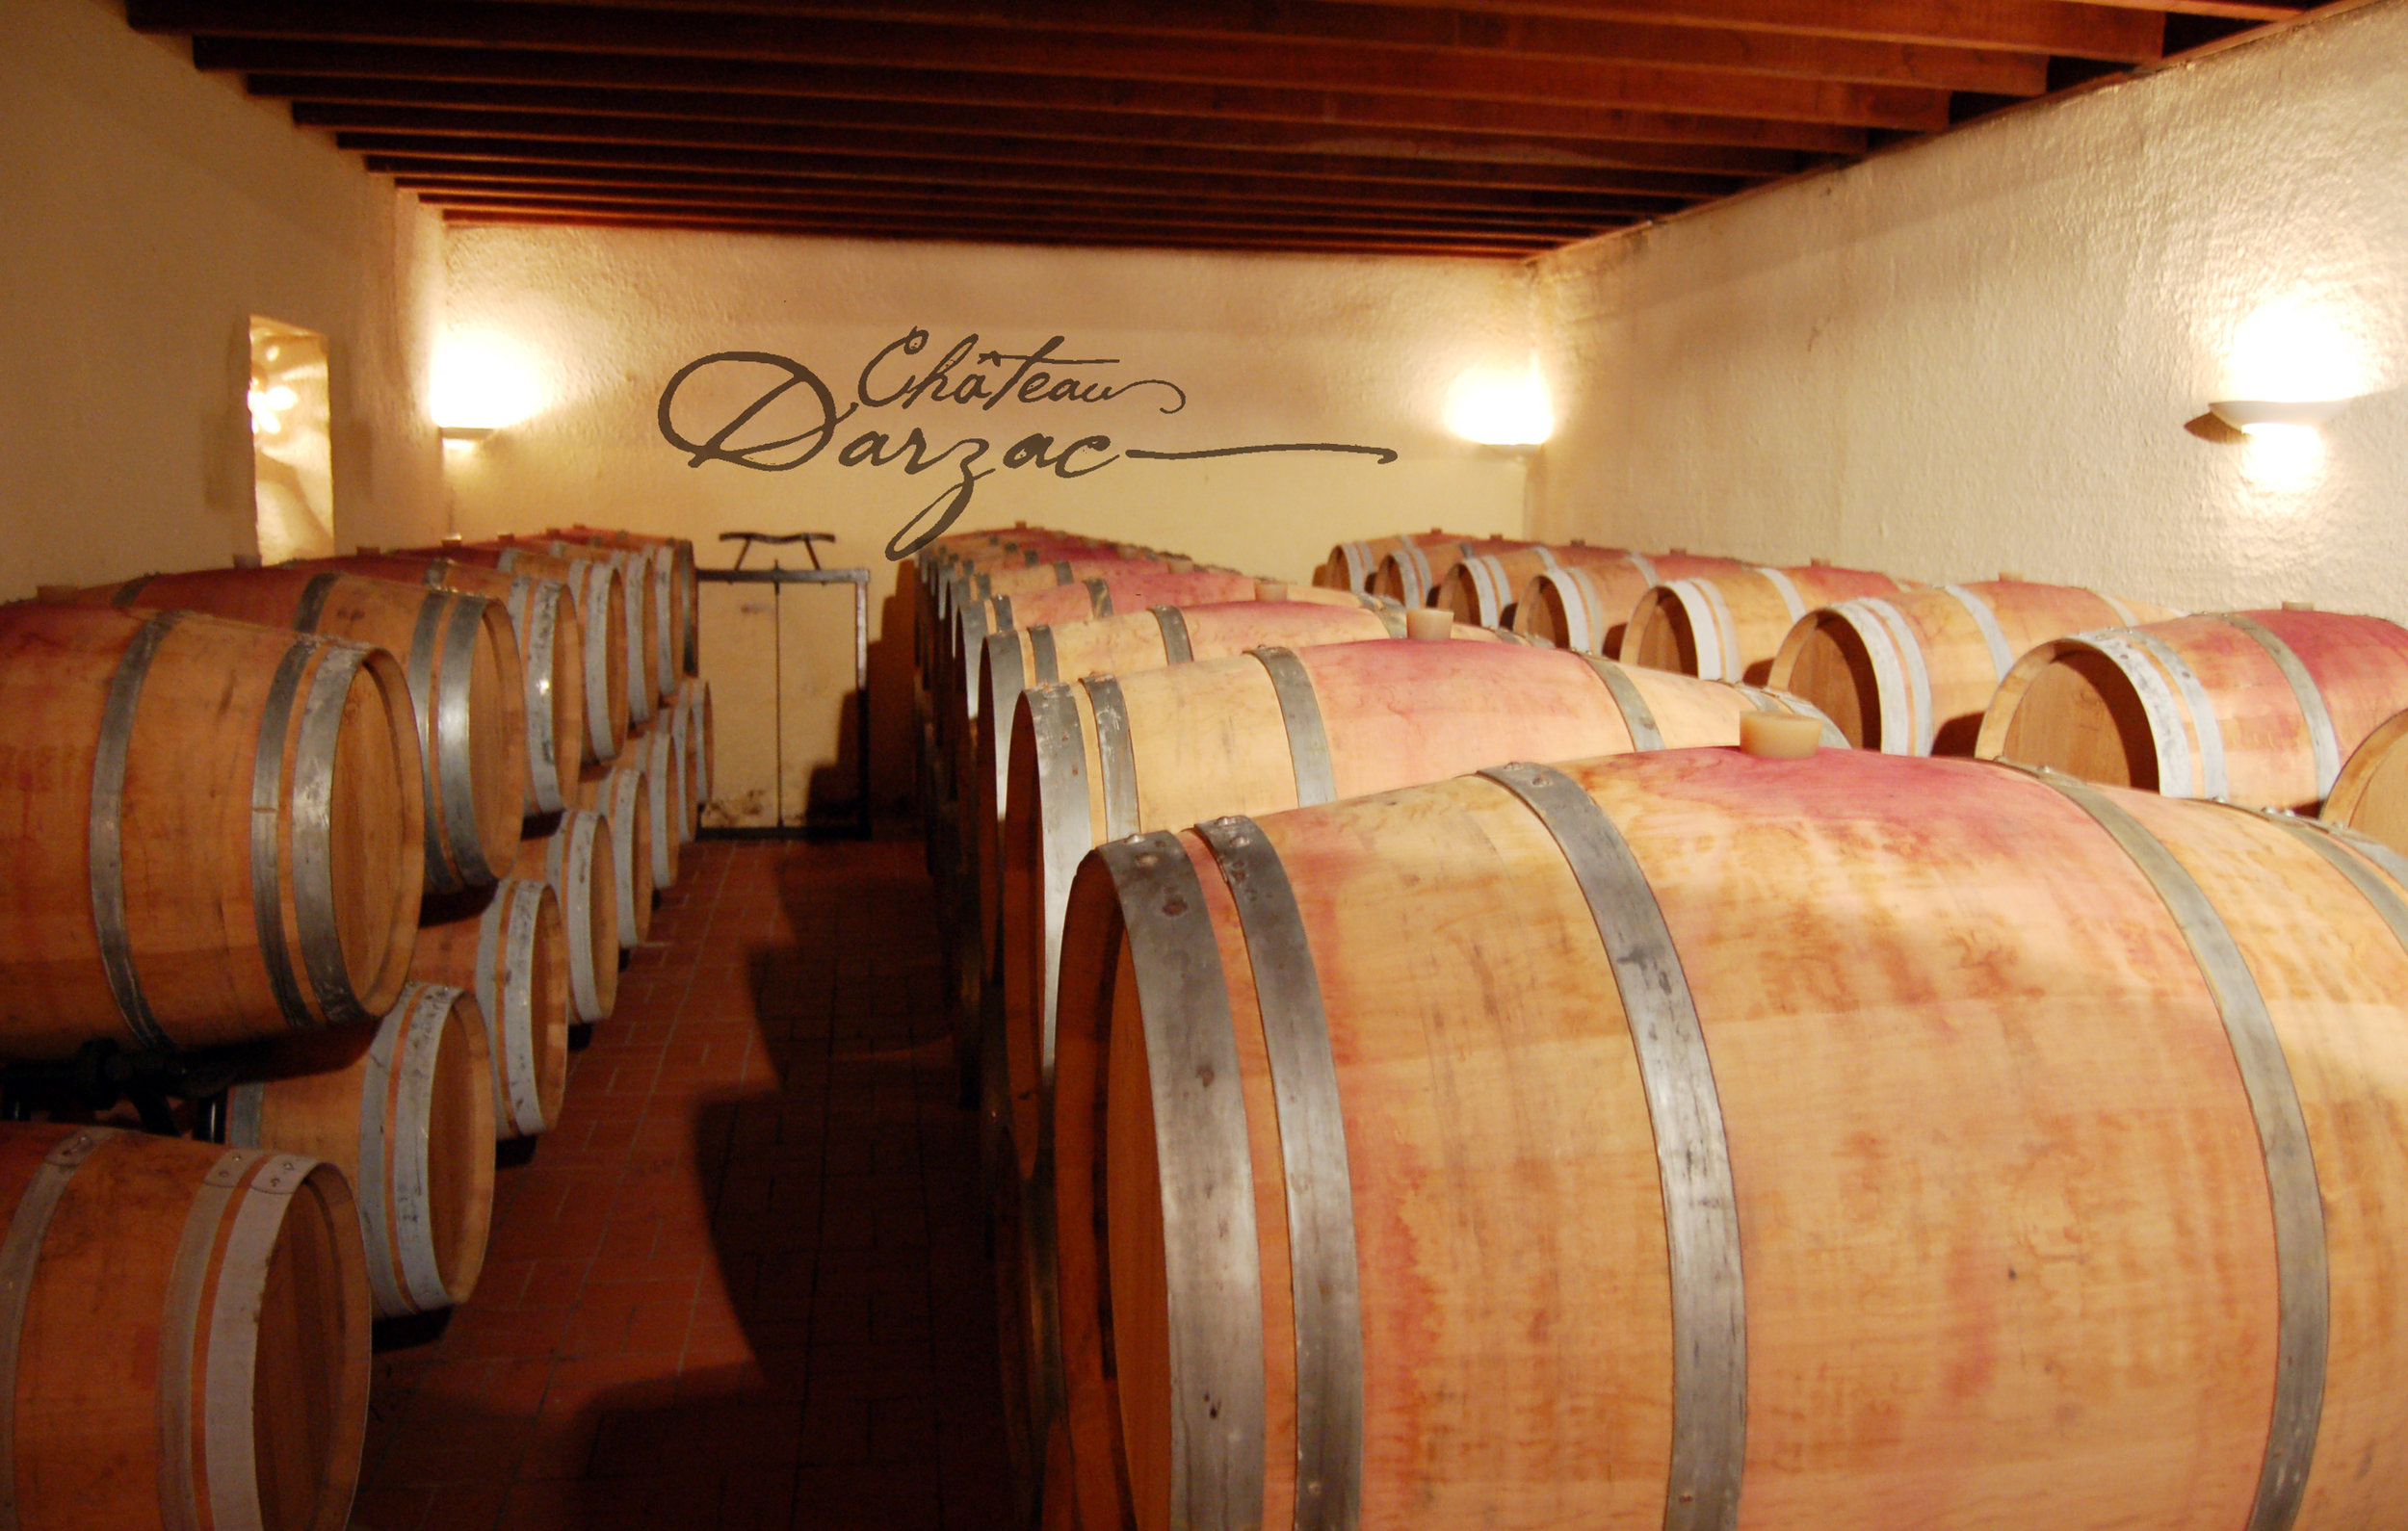 Reds - Château Fondarzac Red: It is composed largely of Merlot, vinified traditionally in order to obtain charming wines. With a controlled extraction during fermentations and a 6-month aging in vats, it characterizes the classic red Bordeaux.Château Darzac Red: Born on our best soils, the Château Darzac is the result of a deeper process of vinification (bleeding, shedding, long-lasting maceration, FML on pomace, undergrowth ...). This makes him a wine of care, complex and elegant.Inheritance: a selection of our best merlots, a part spent in barrels, gives birth to a powerful and expressive red wine.Origin: These magnificent Merlots from the original plot of the farm benefit from special treatment. A specific hydraulic press and then a 24-month barrel pass.